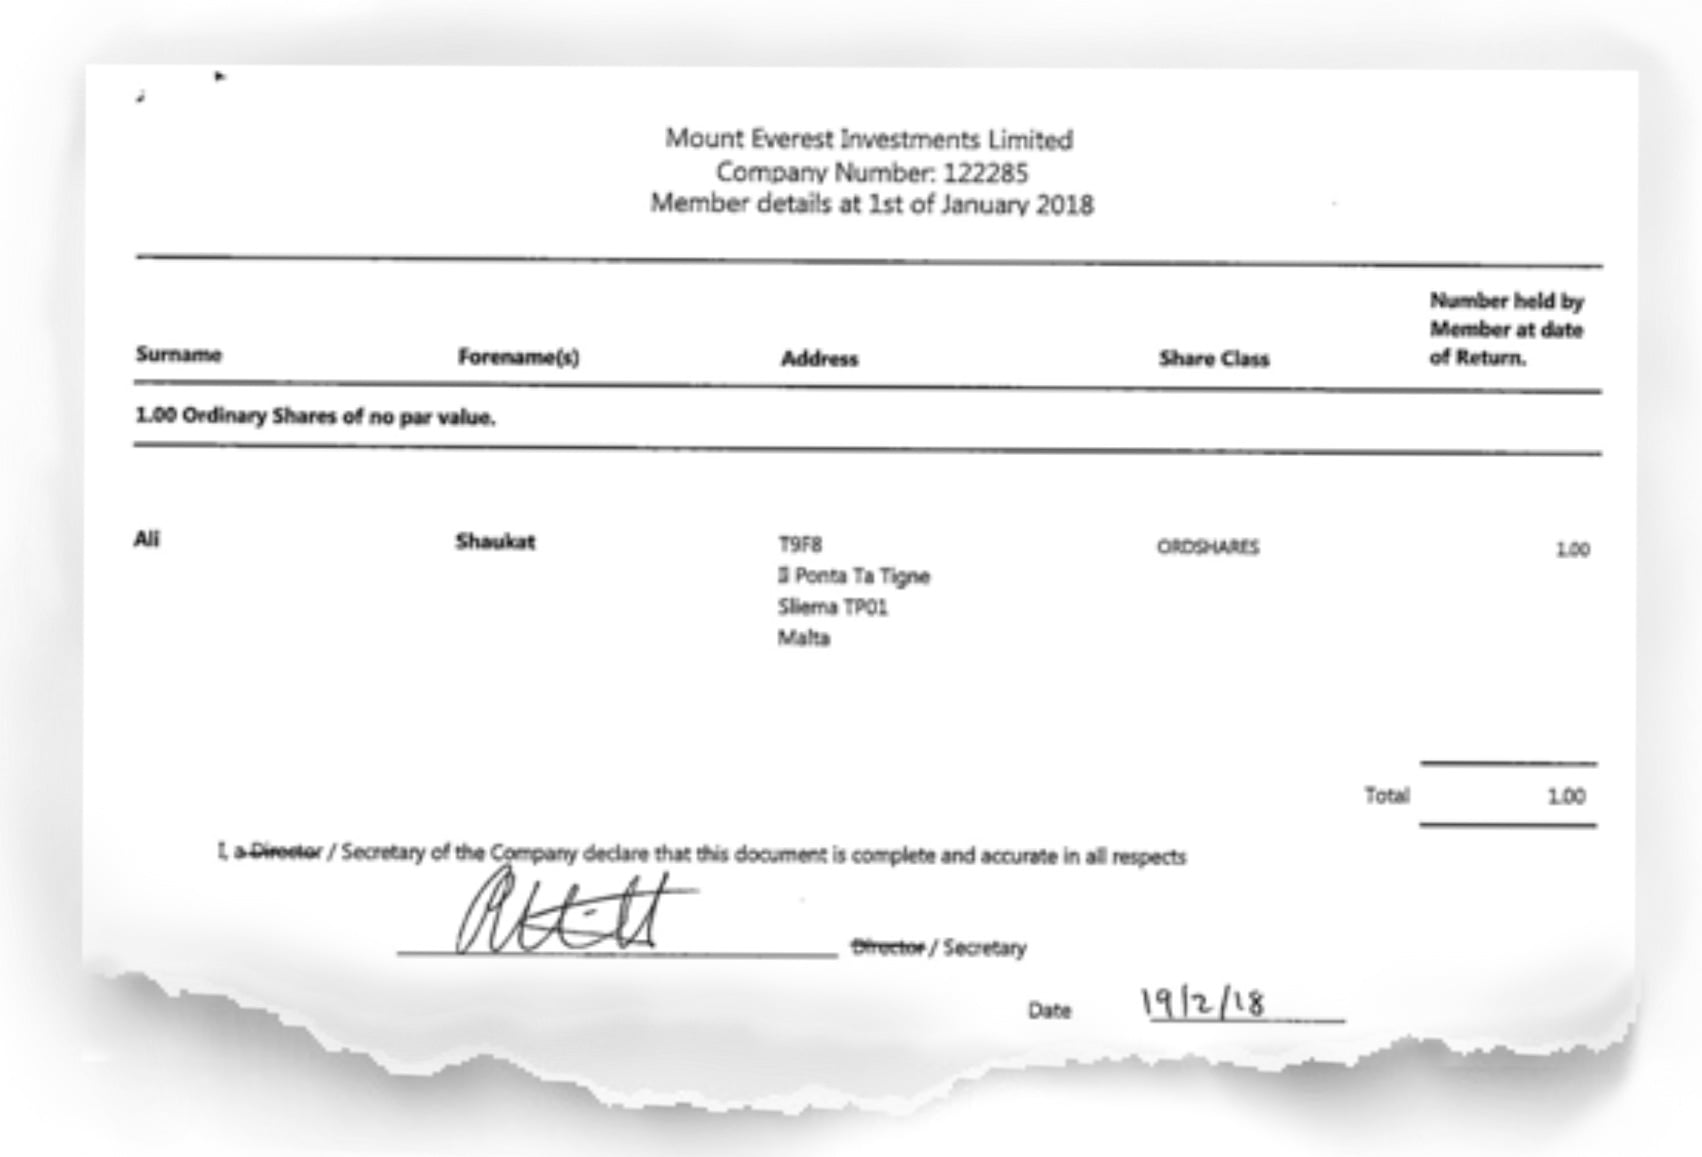 The Shift News had previously shown how Shaukat Ali owned one of the Jersey companies called Mount Everest